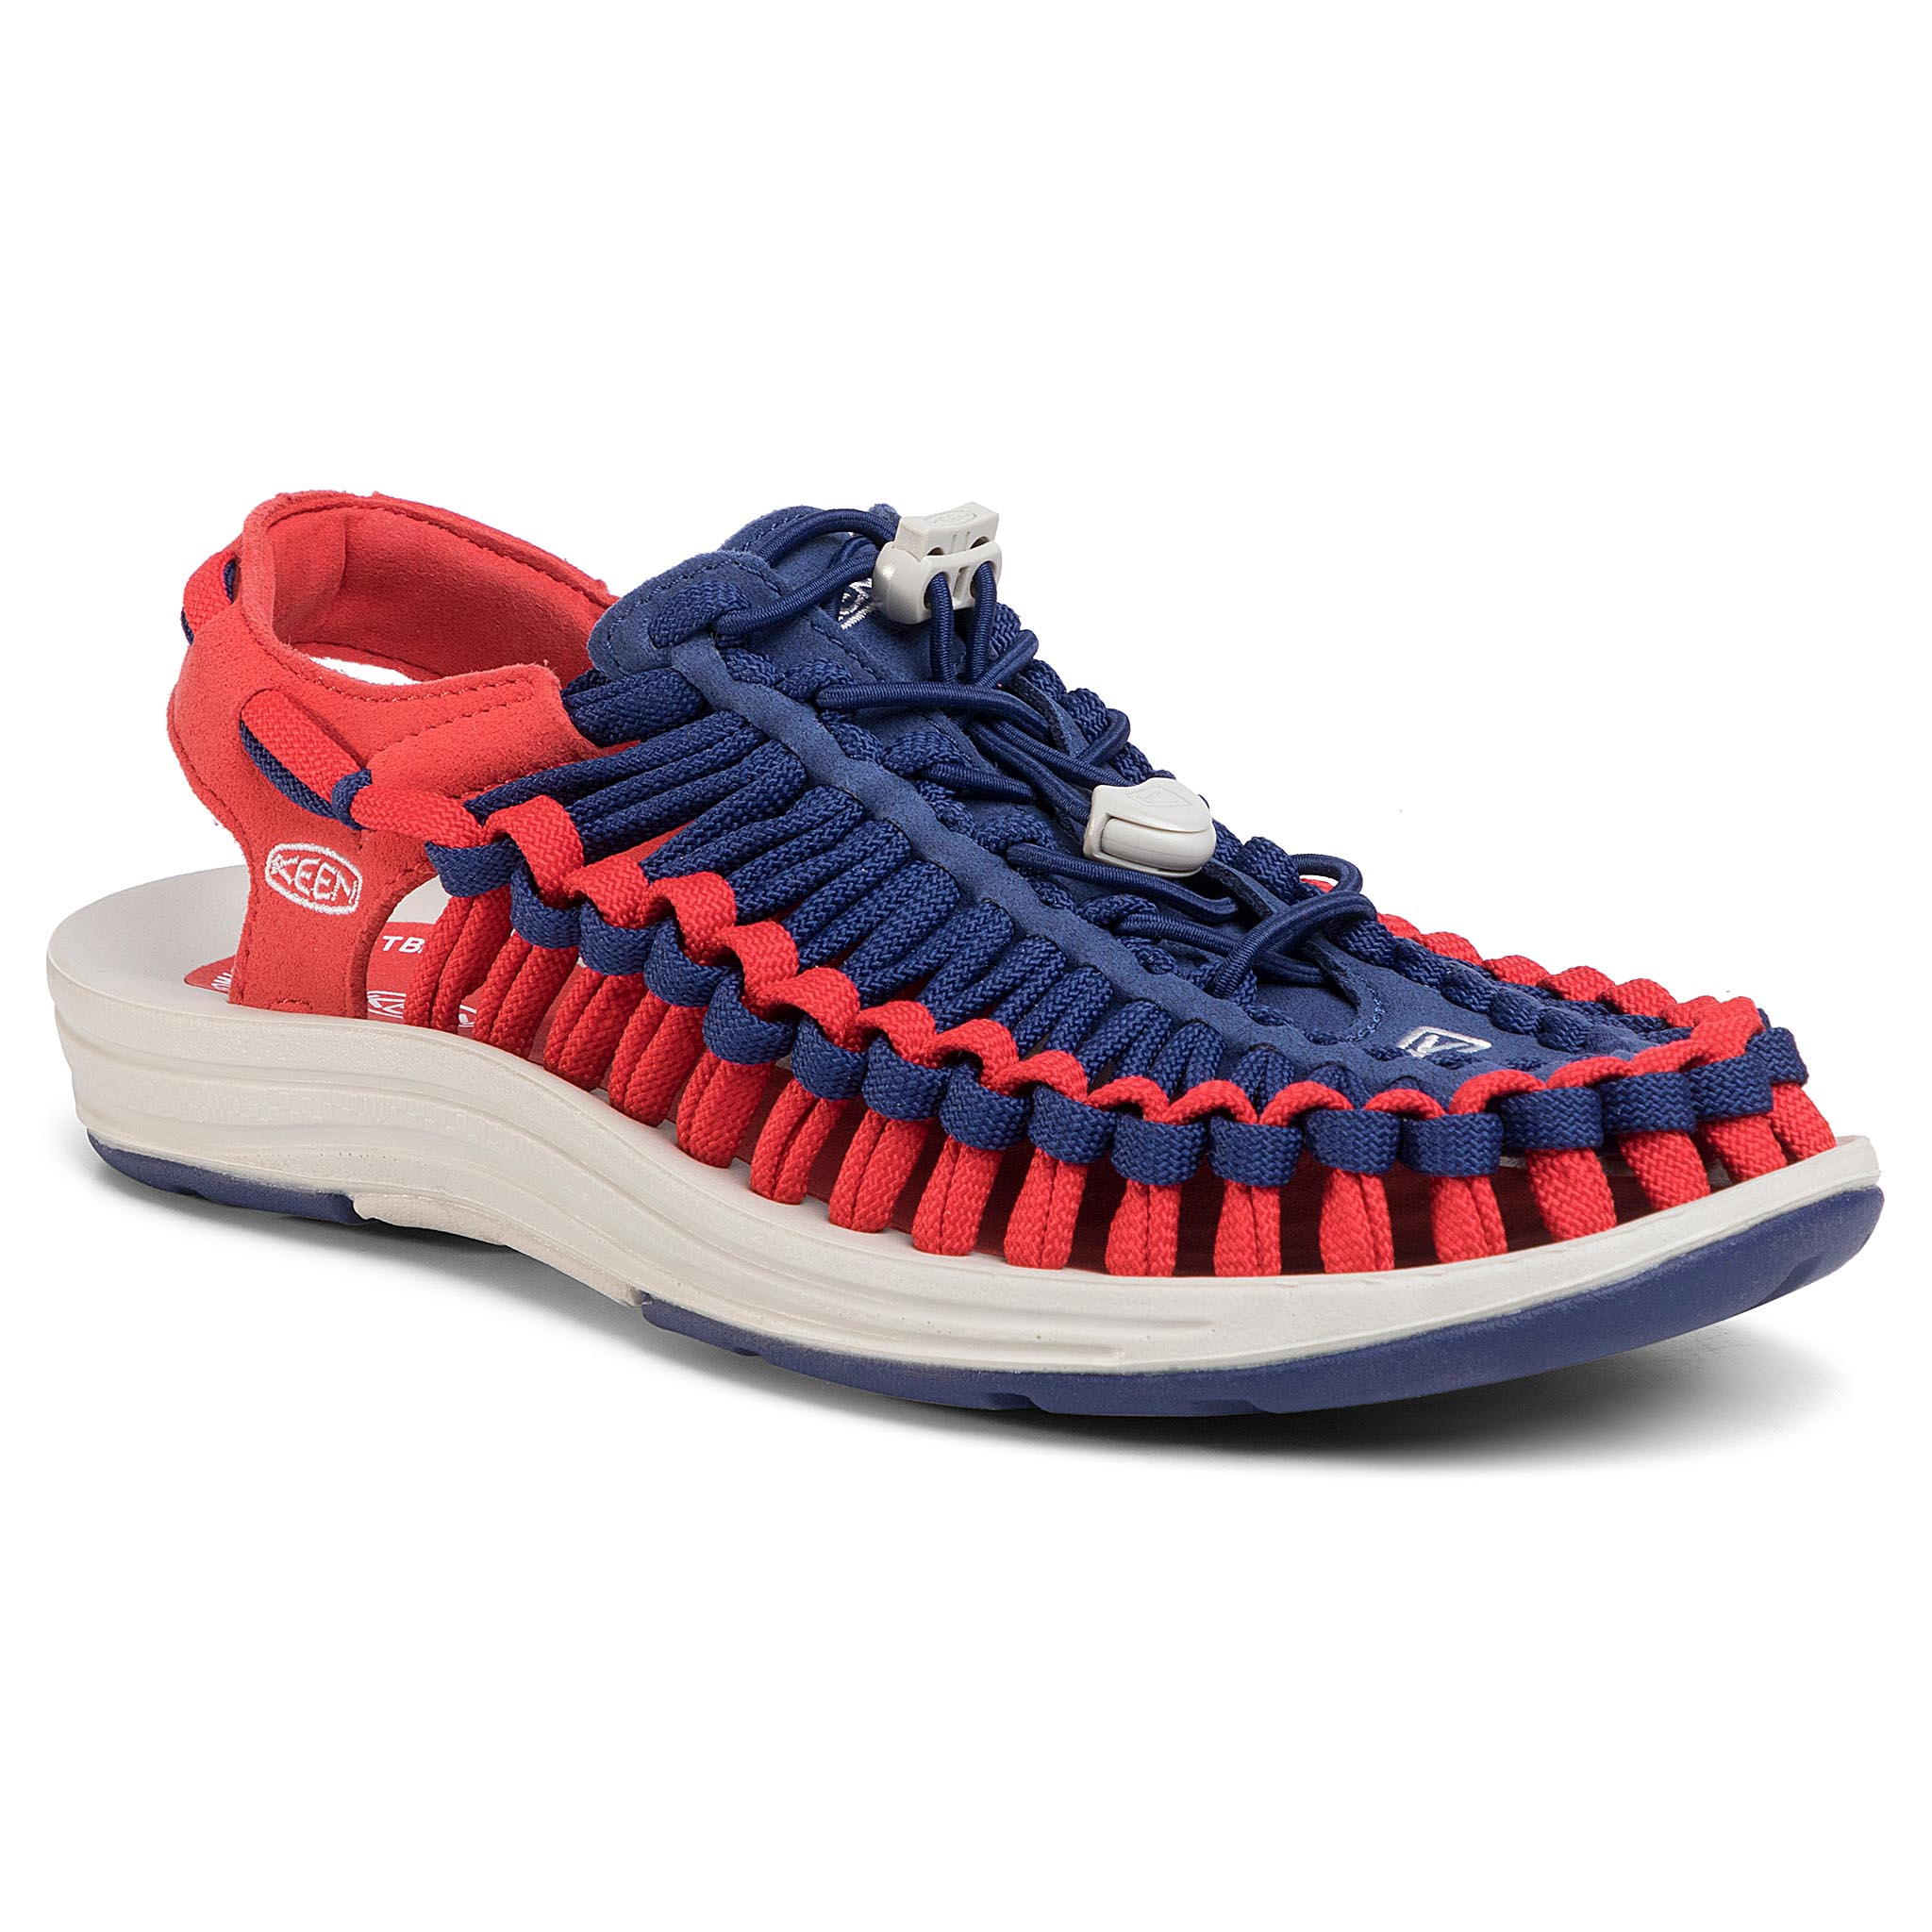 Sandale KEEN - Uneek Flat 1023064 Blue Depths/Firey Red